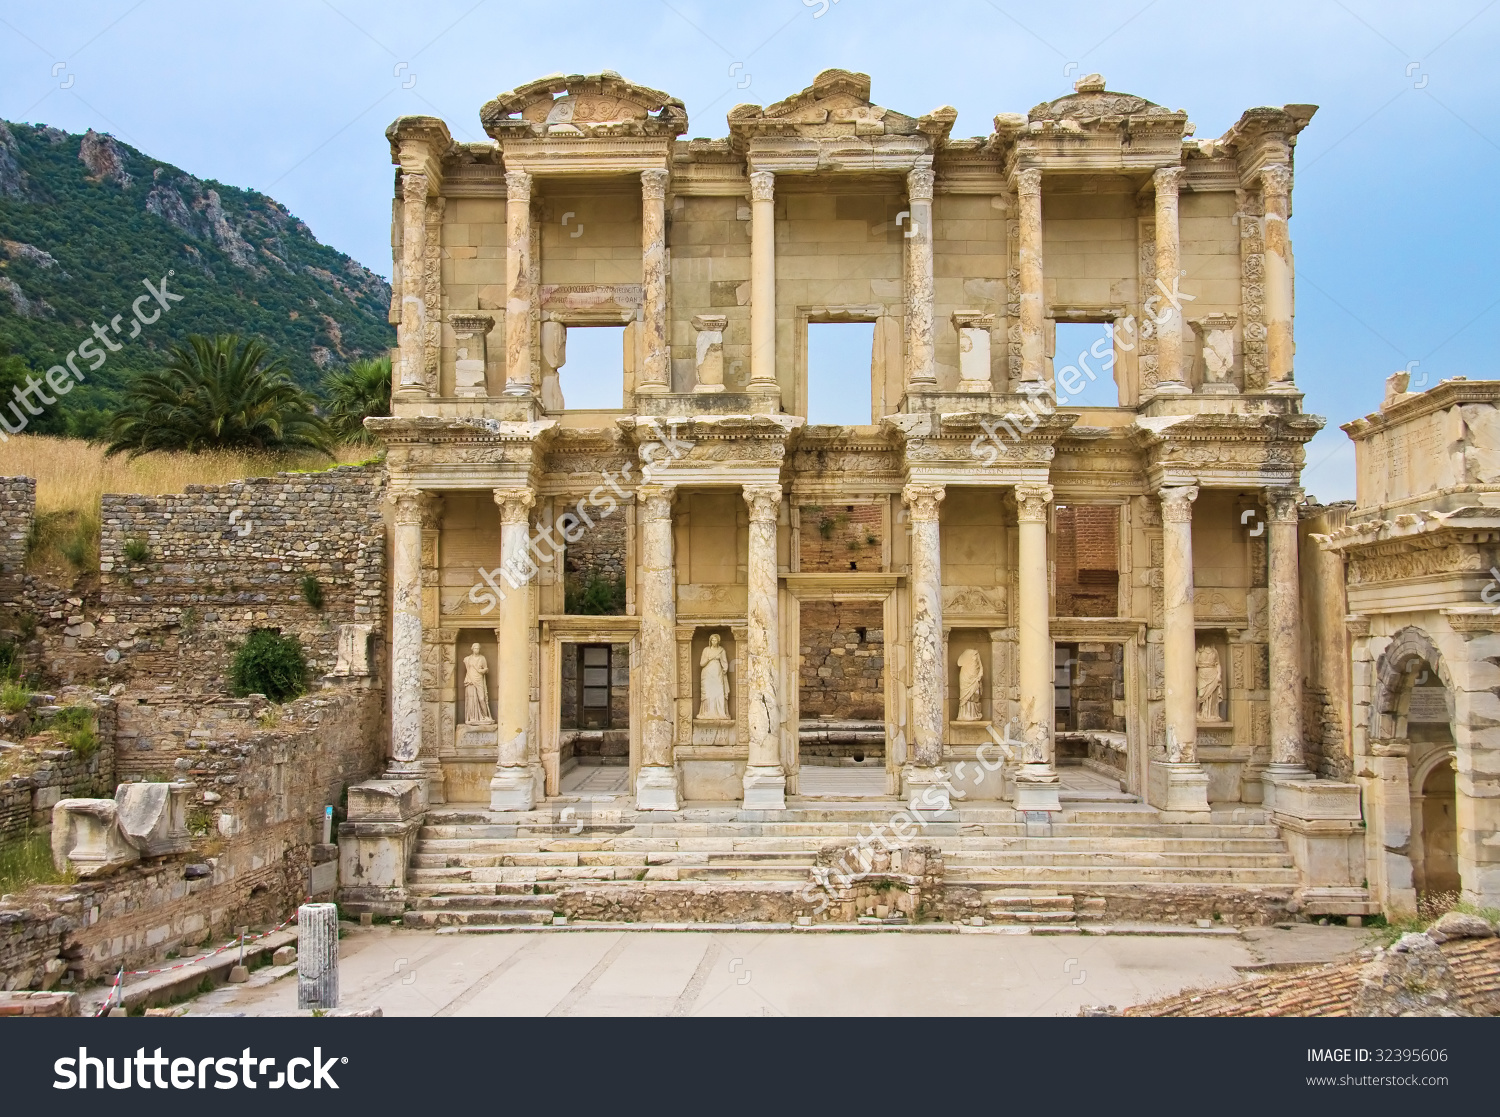 Facade Library Celsus Ephesus Turkey Stock Photo 32395606.